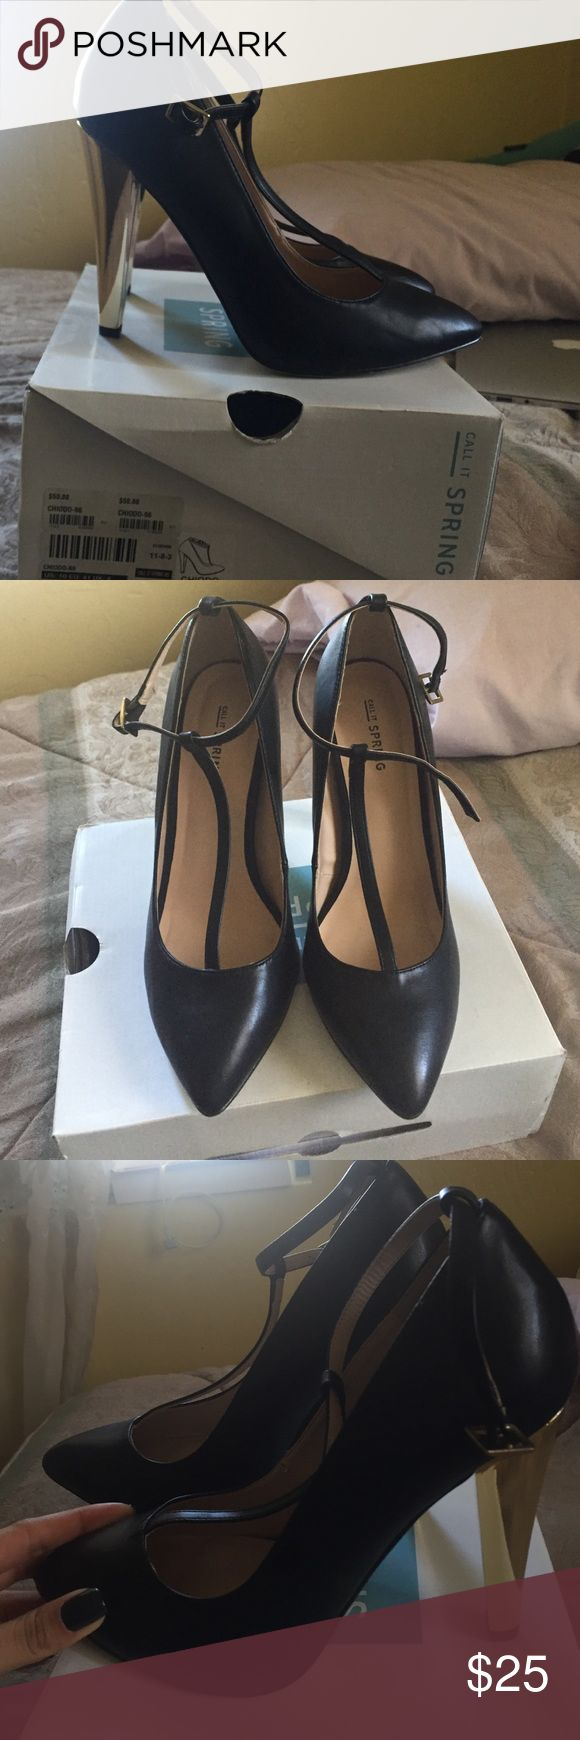 black heels with strap and golden heels these black heels come with golden heels making them pop Call It Spring Shoes Heels